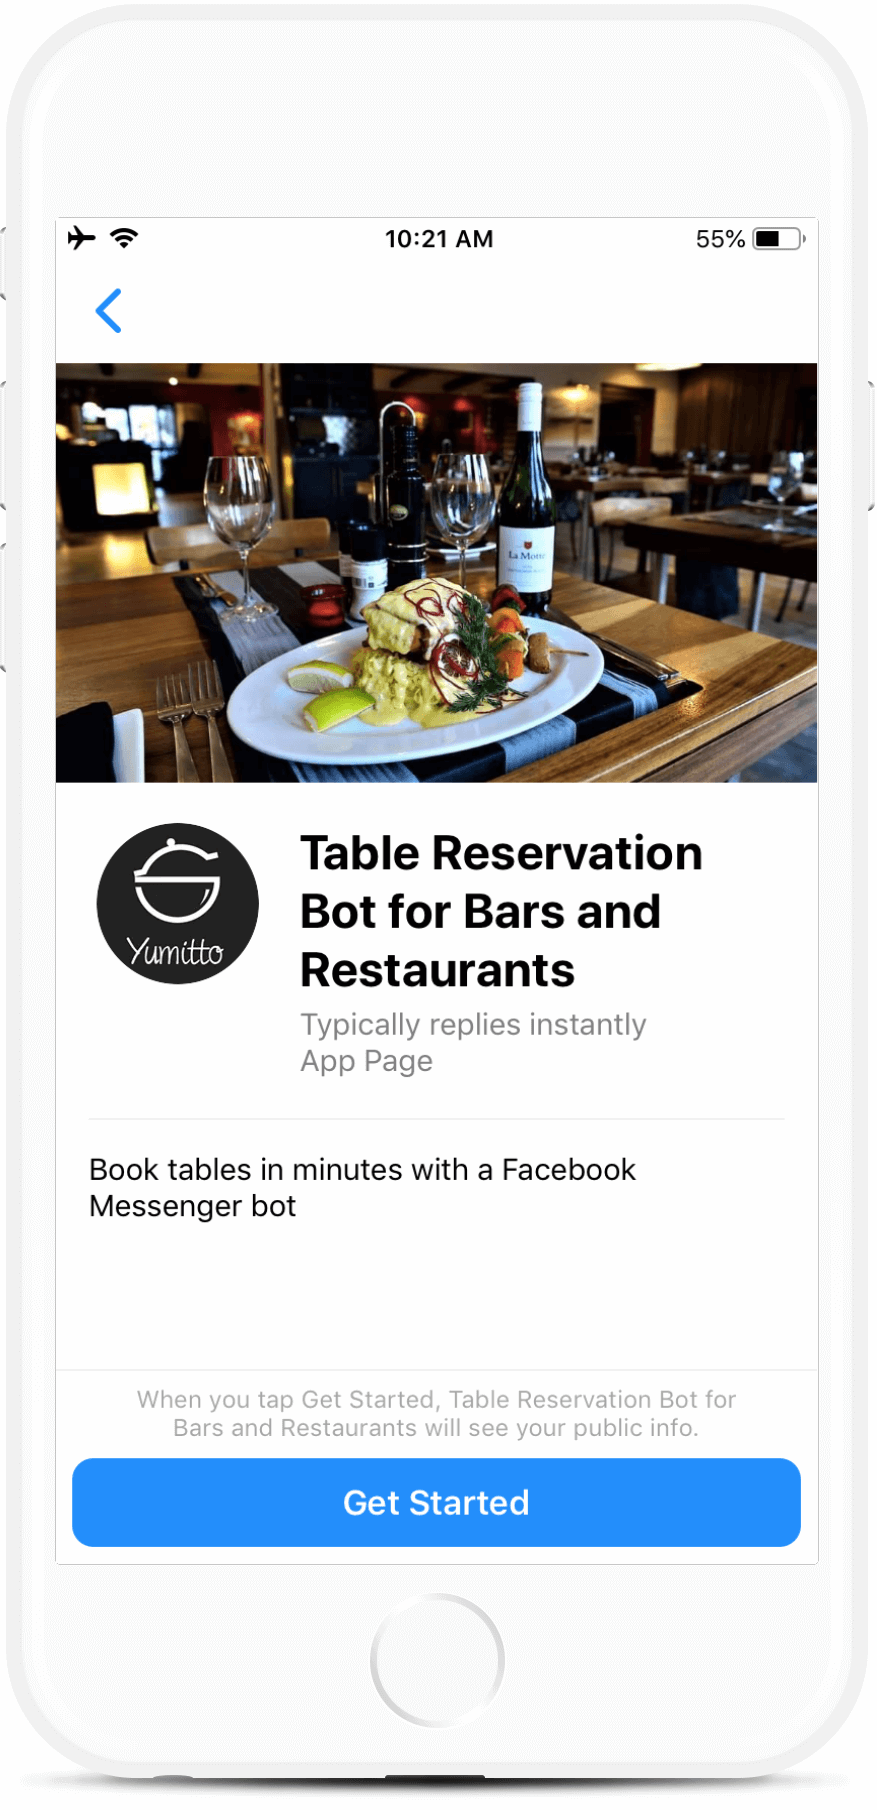 Restaurant table reservation  bot screenshot